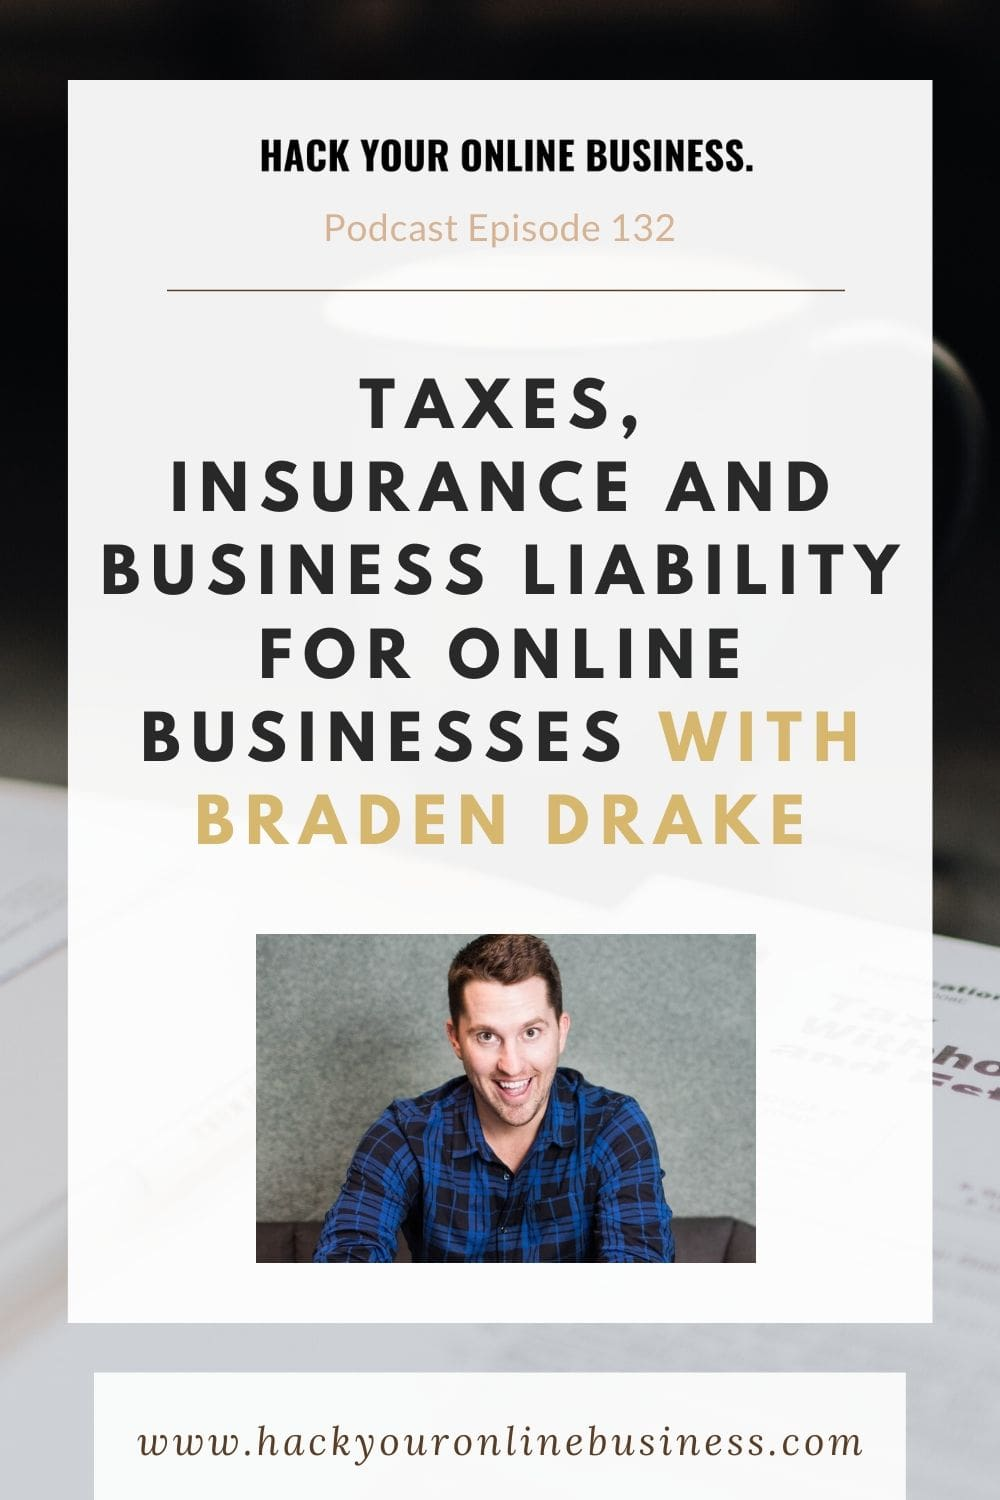 Taxes, Insurance And Business Liability For Online Businesses